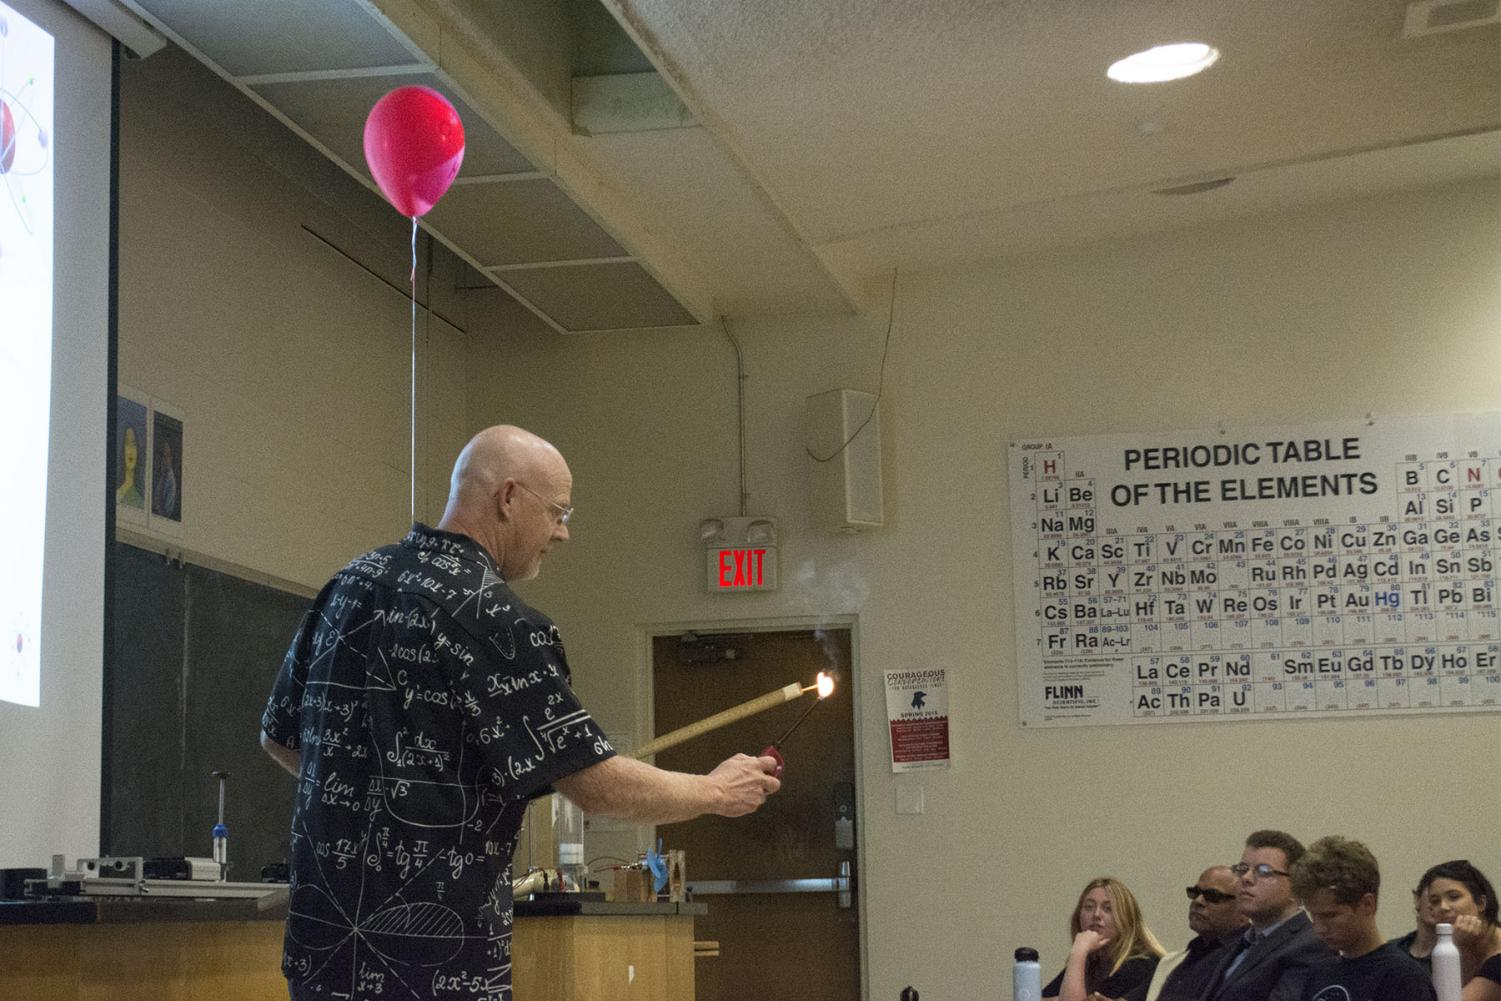 Doctor Michael Young demonstrates how a Hydrogen bomb works with a balloon and how the chemical reacts to heat in the Futurism Club on Thursday, April 18, 2019, in the Physical Sciences Building Room 101 at City College in Santa Barbara, Calif.